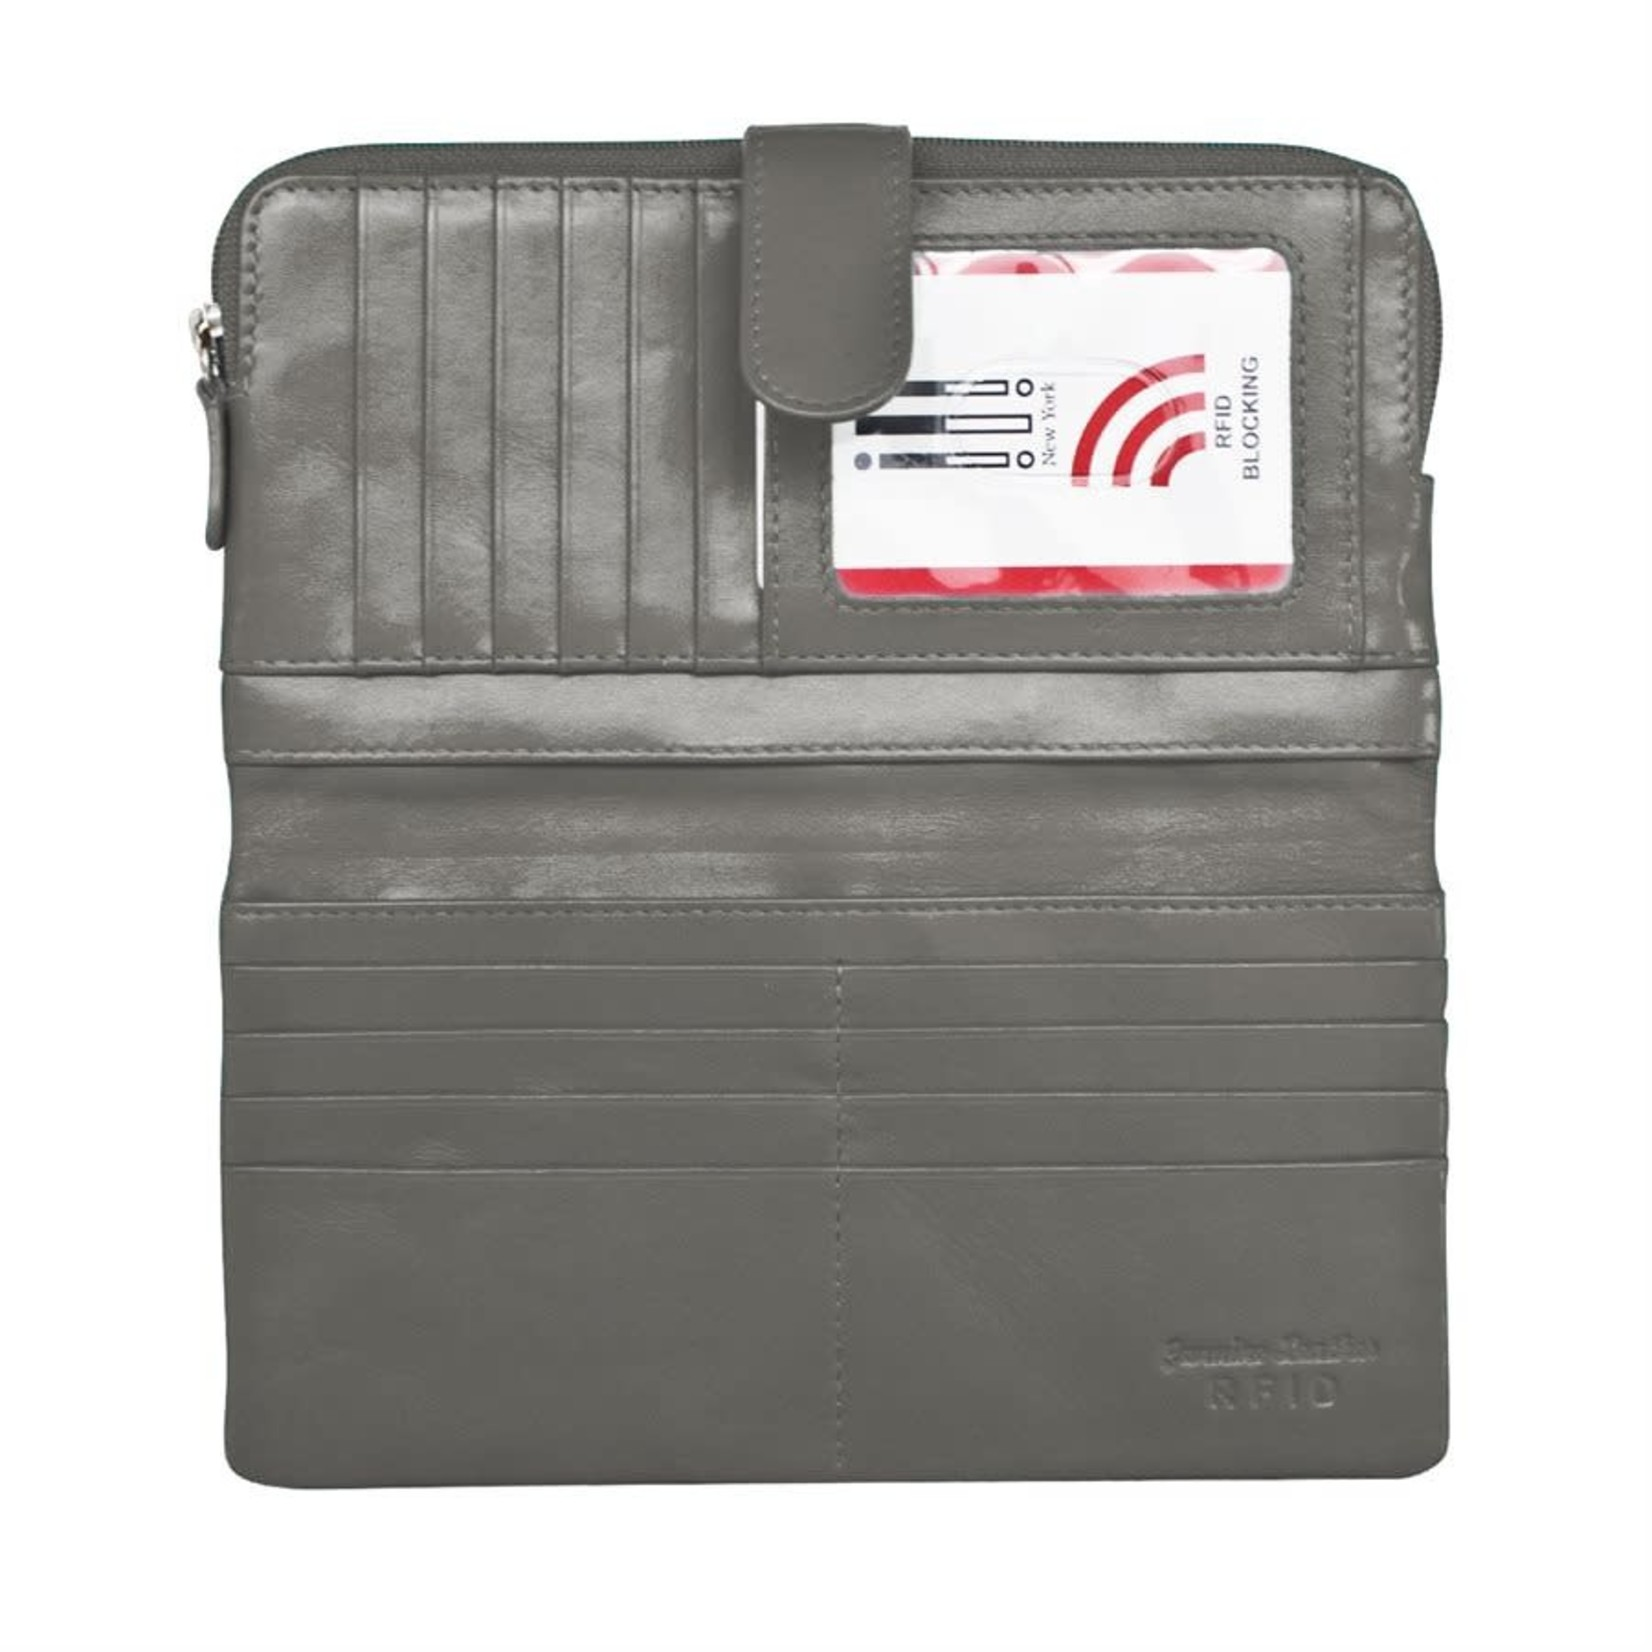 Leather Handbags and Accessories 7420 Gray - RFID Smartphone Wallet